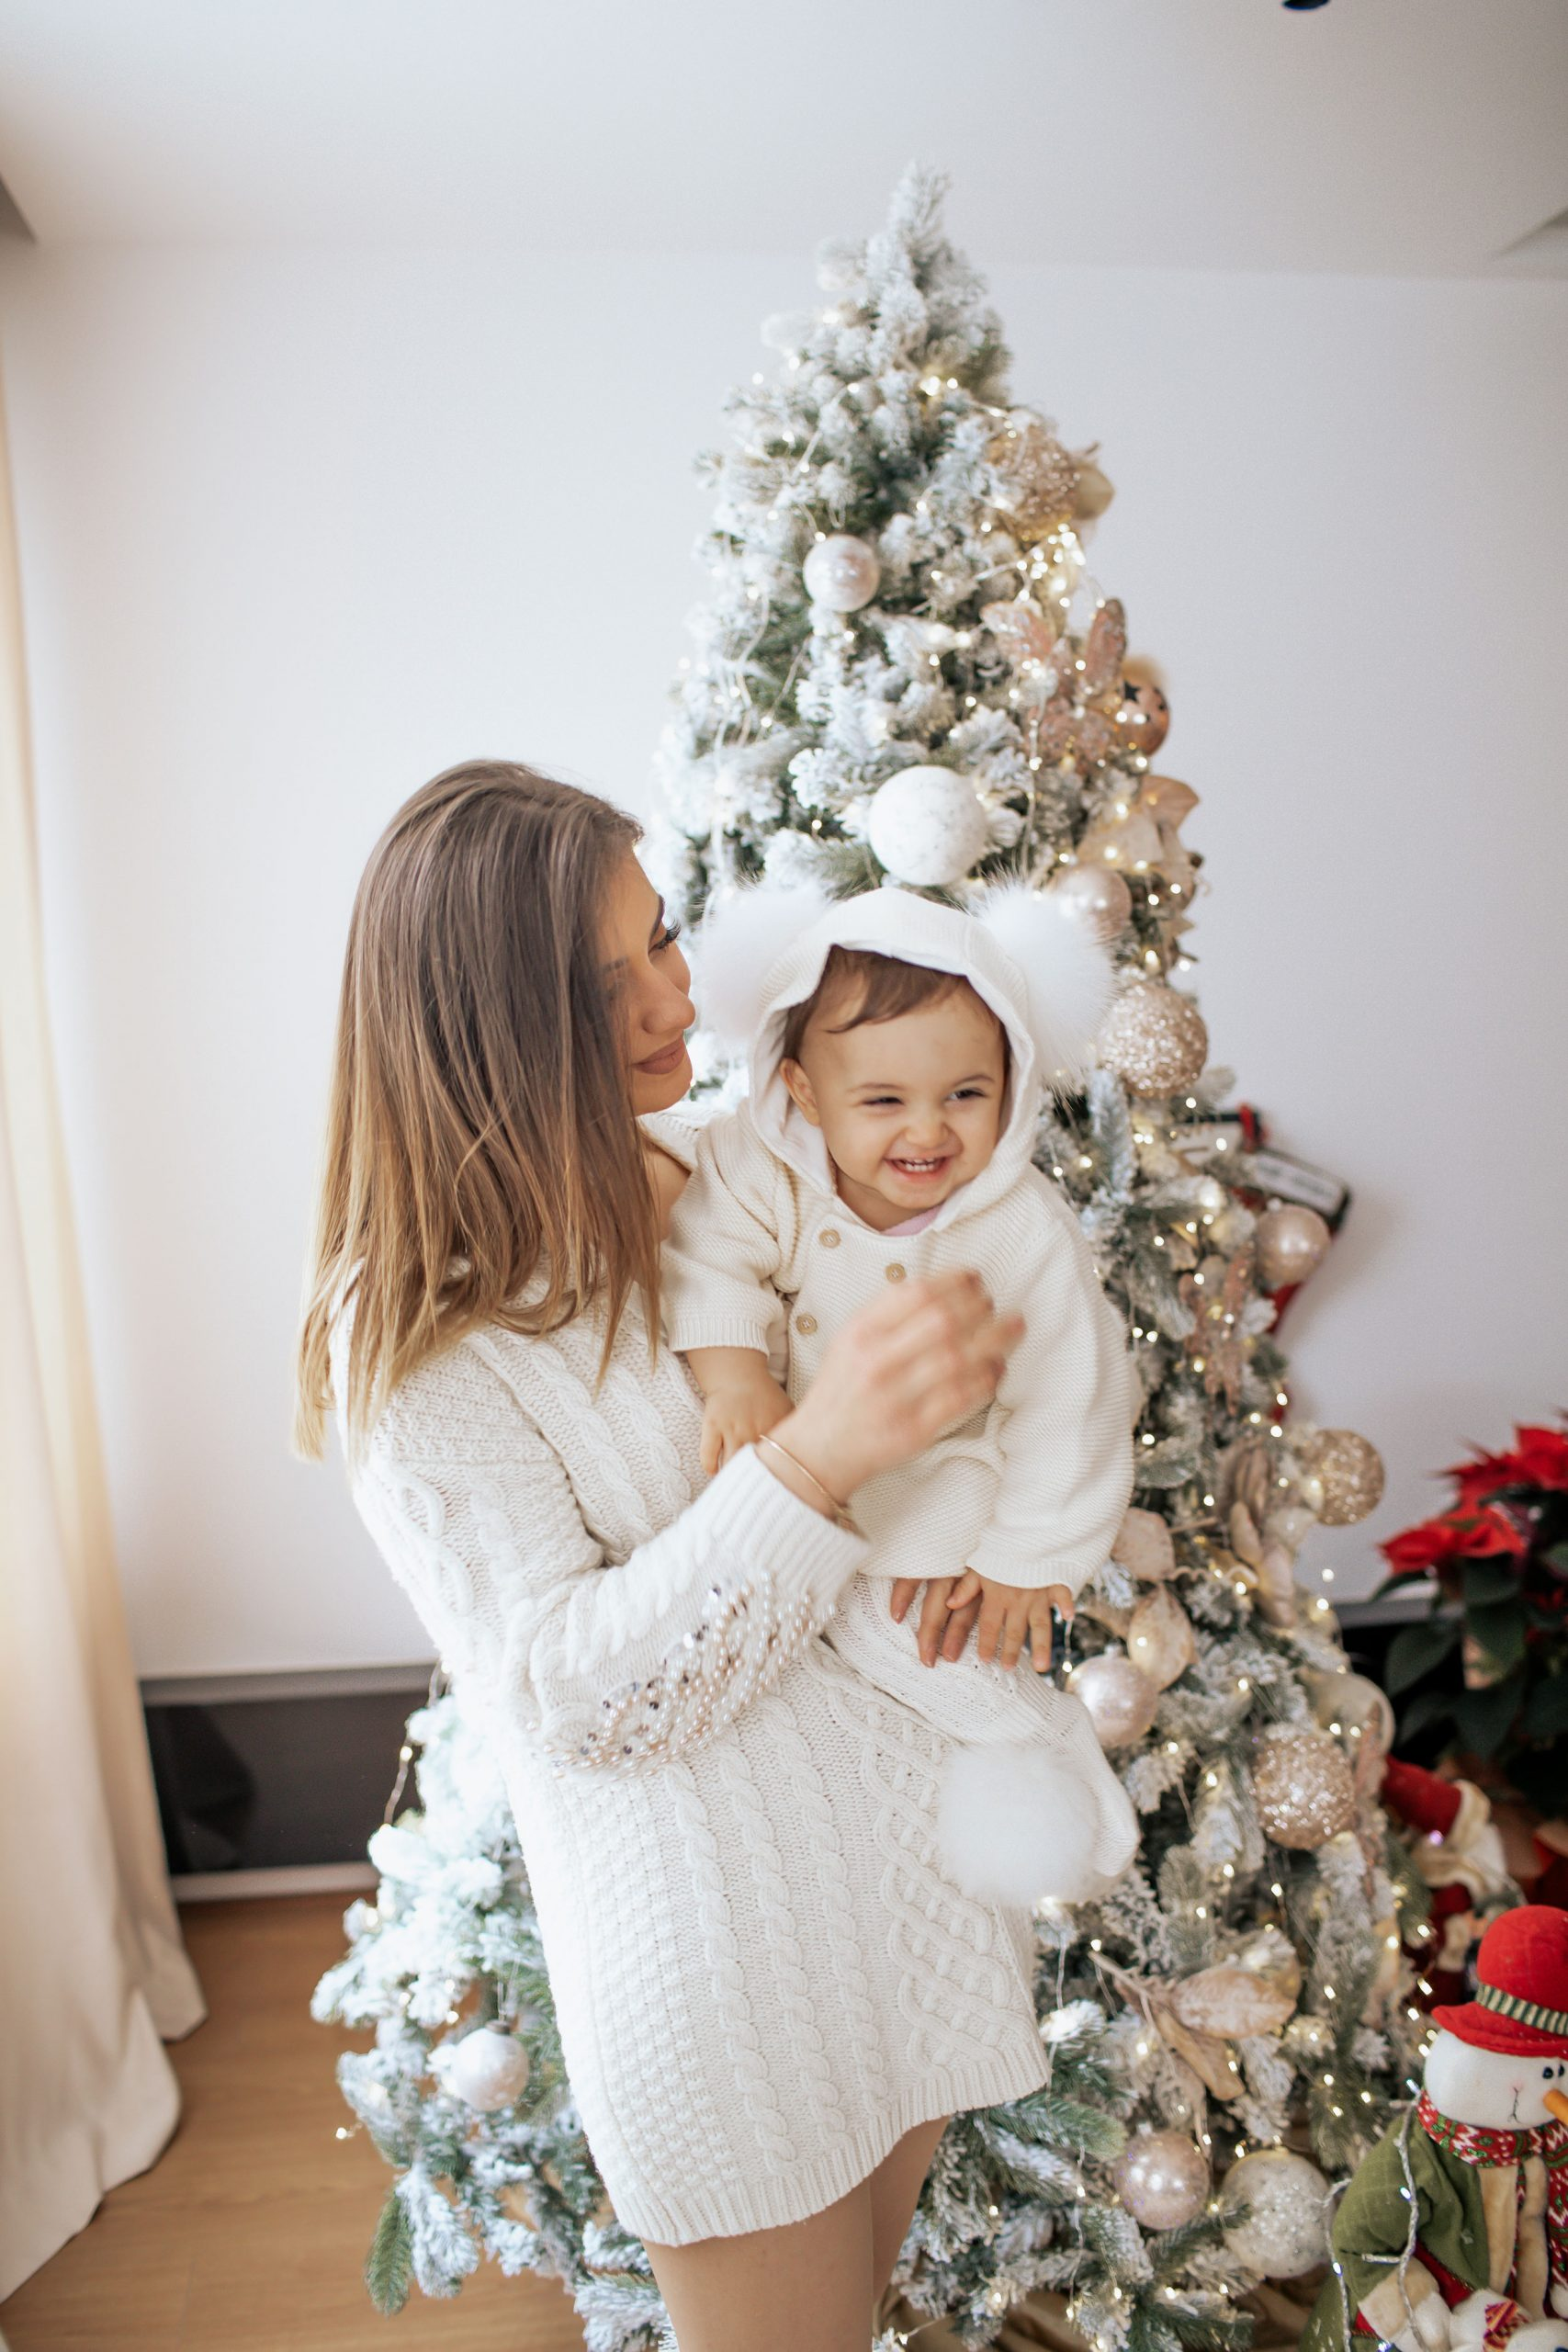 Mother and baby having fun in the Christmas photoshoot